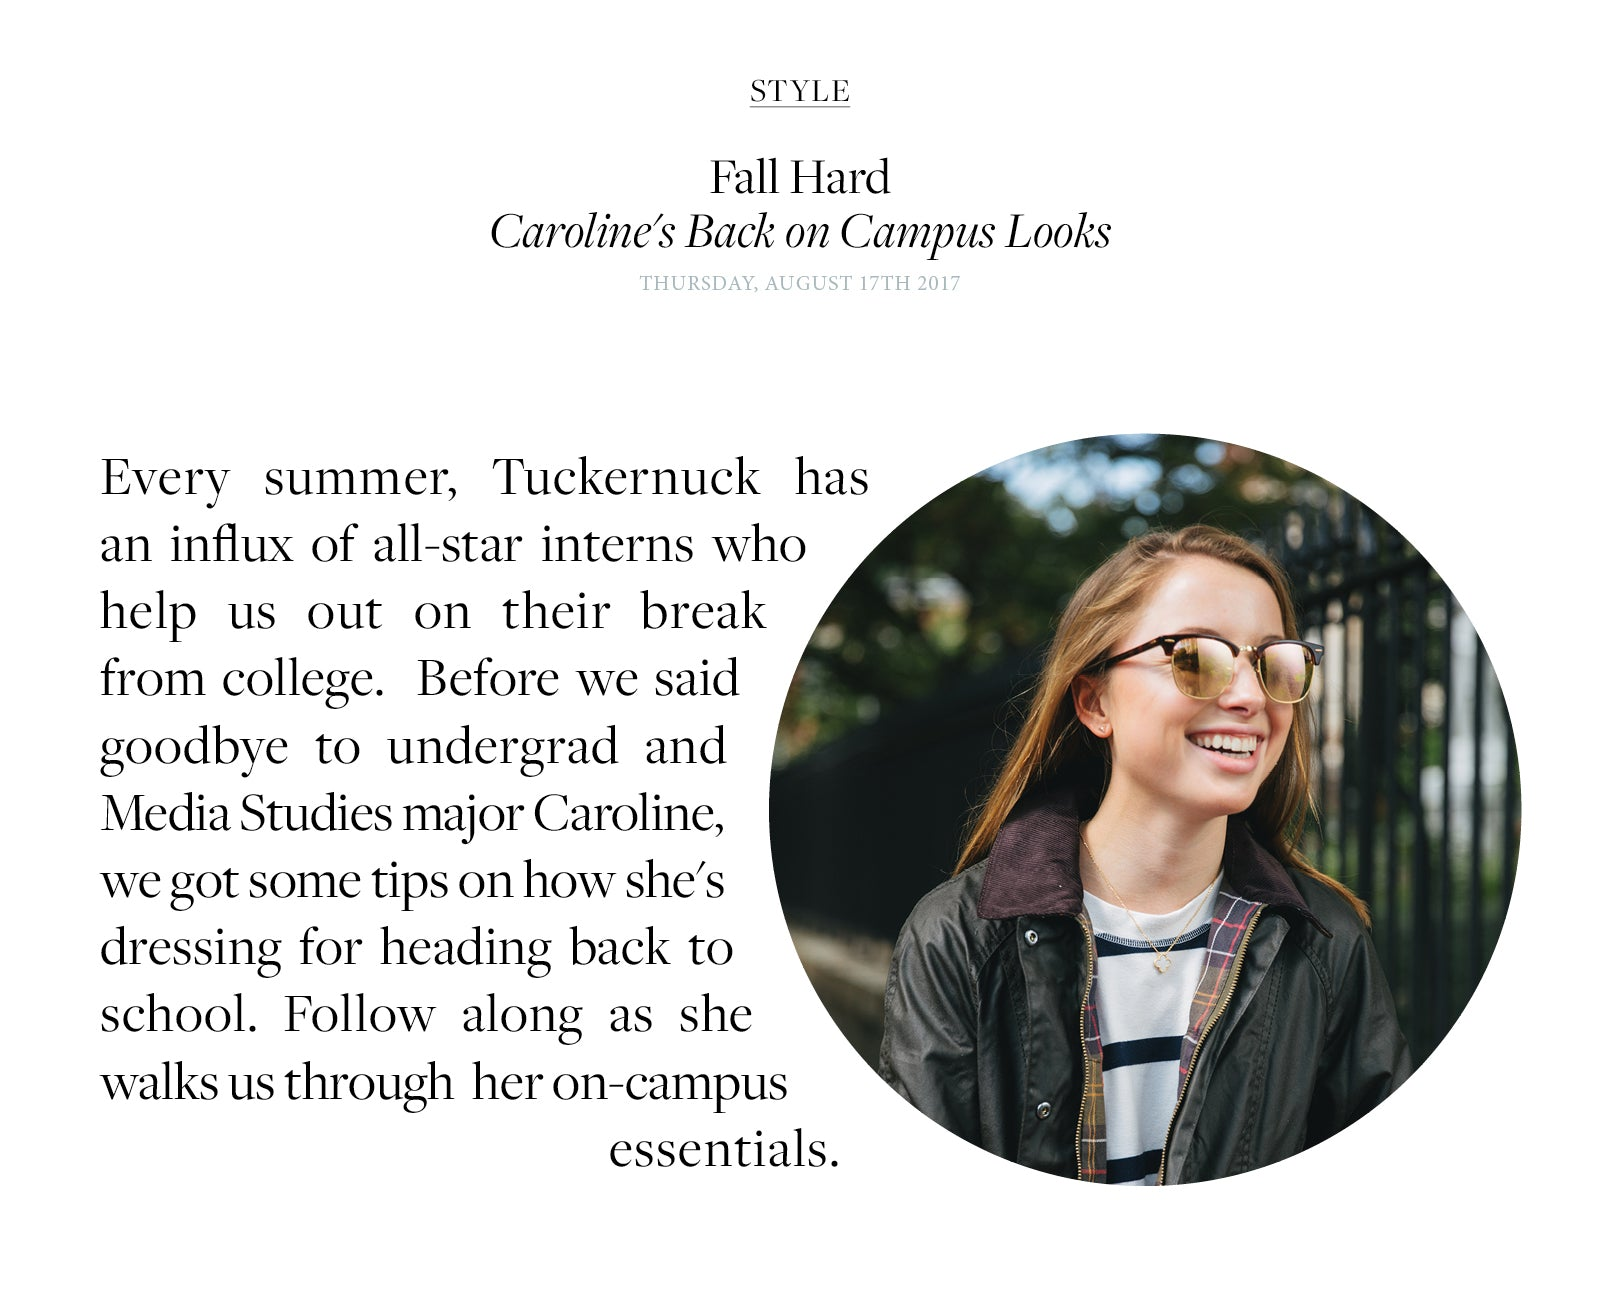 Every summer, Tuckernuck has an influx of all-star interns who help us out on their break from college.  Before we said goodbye to undergrad and Media Studies major Caroline,  we got some tips on how she's dressing for heading back to school. Follow along as she walks us through  her on-campus  essentials.